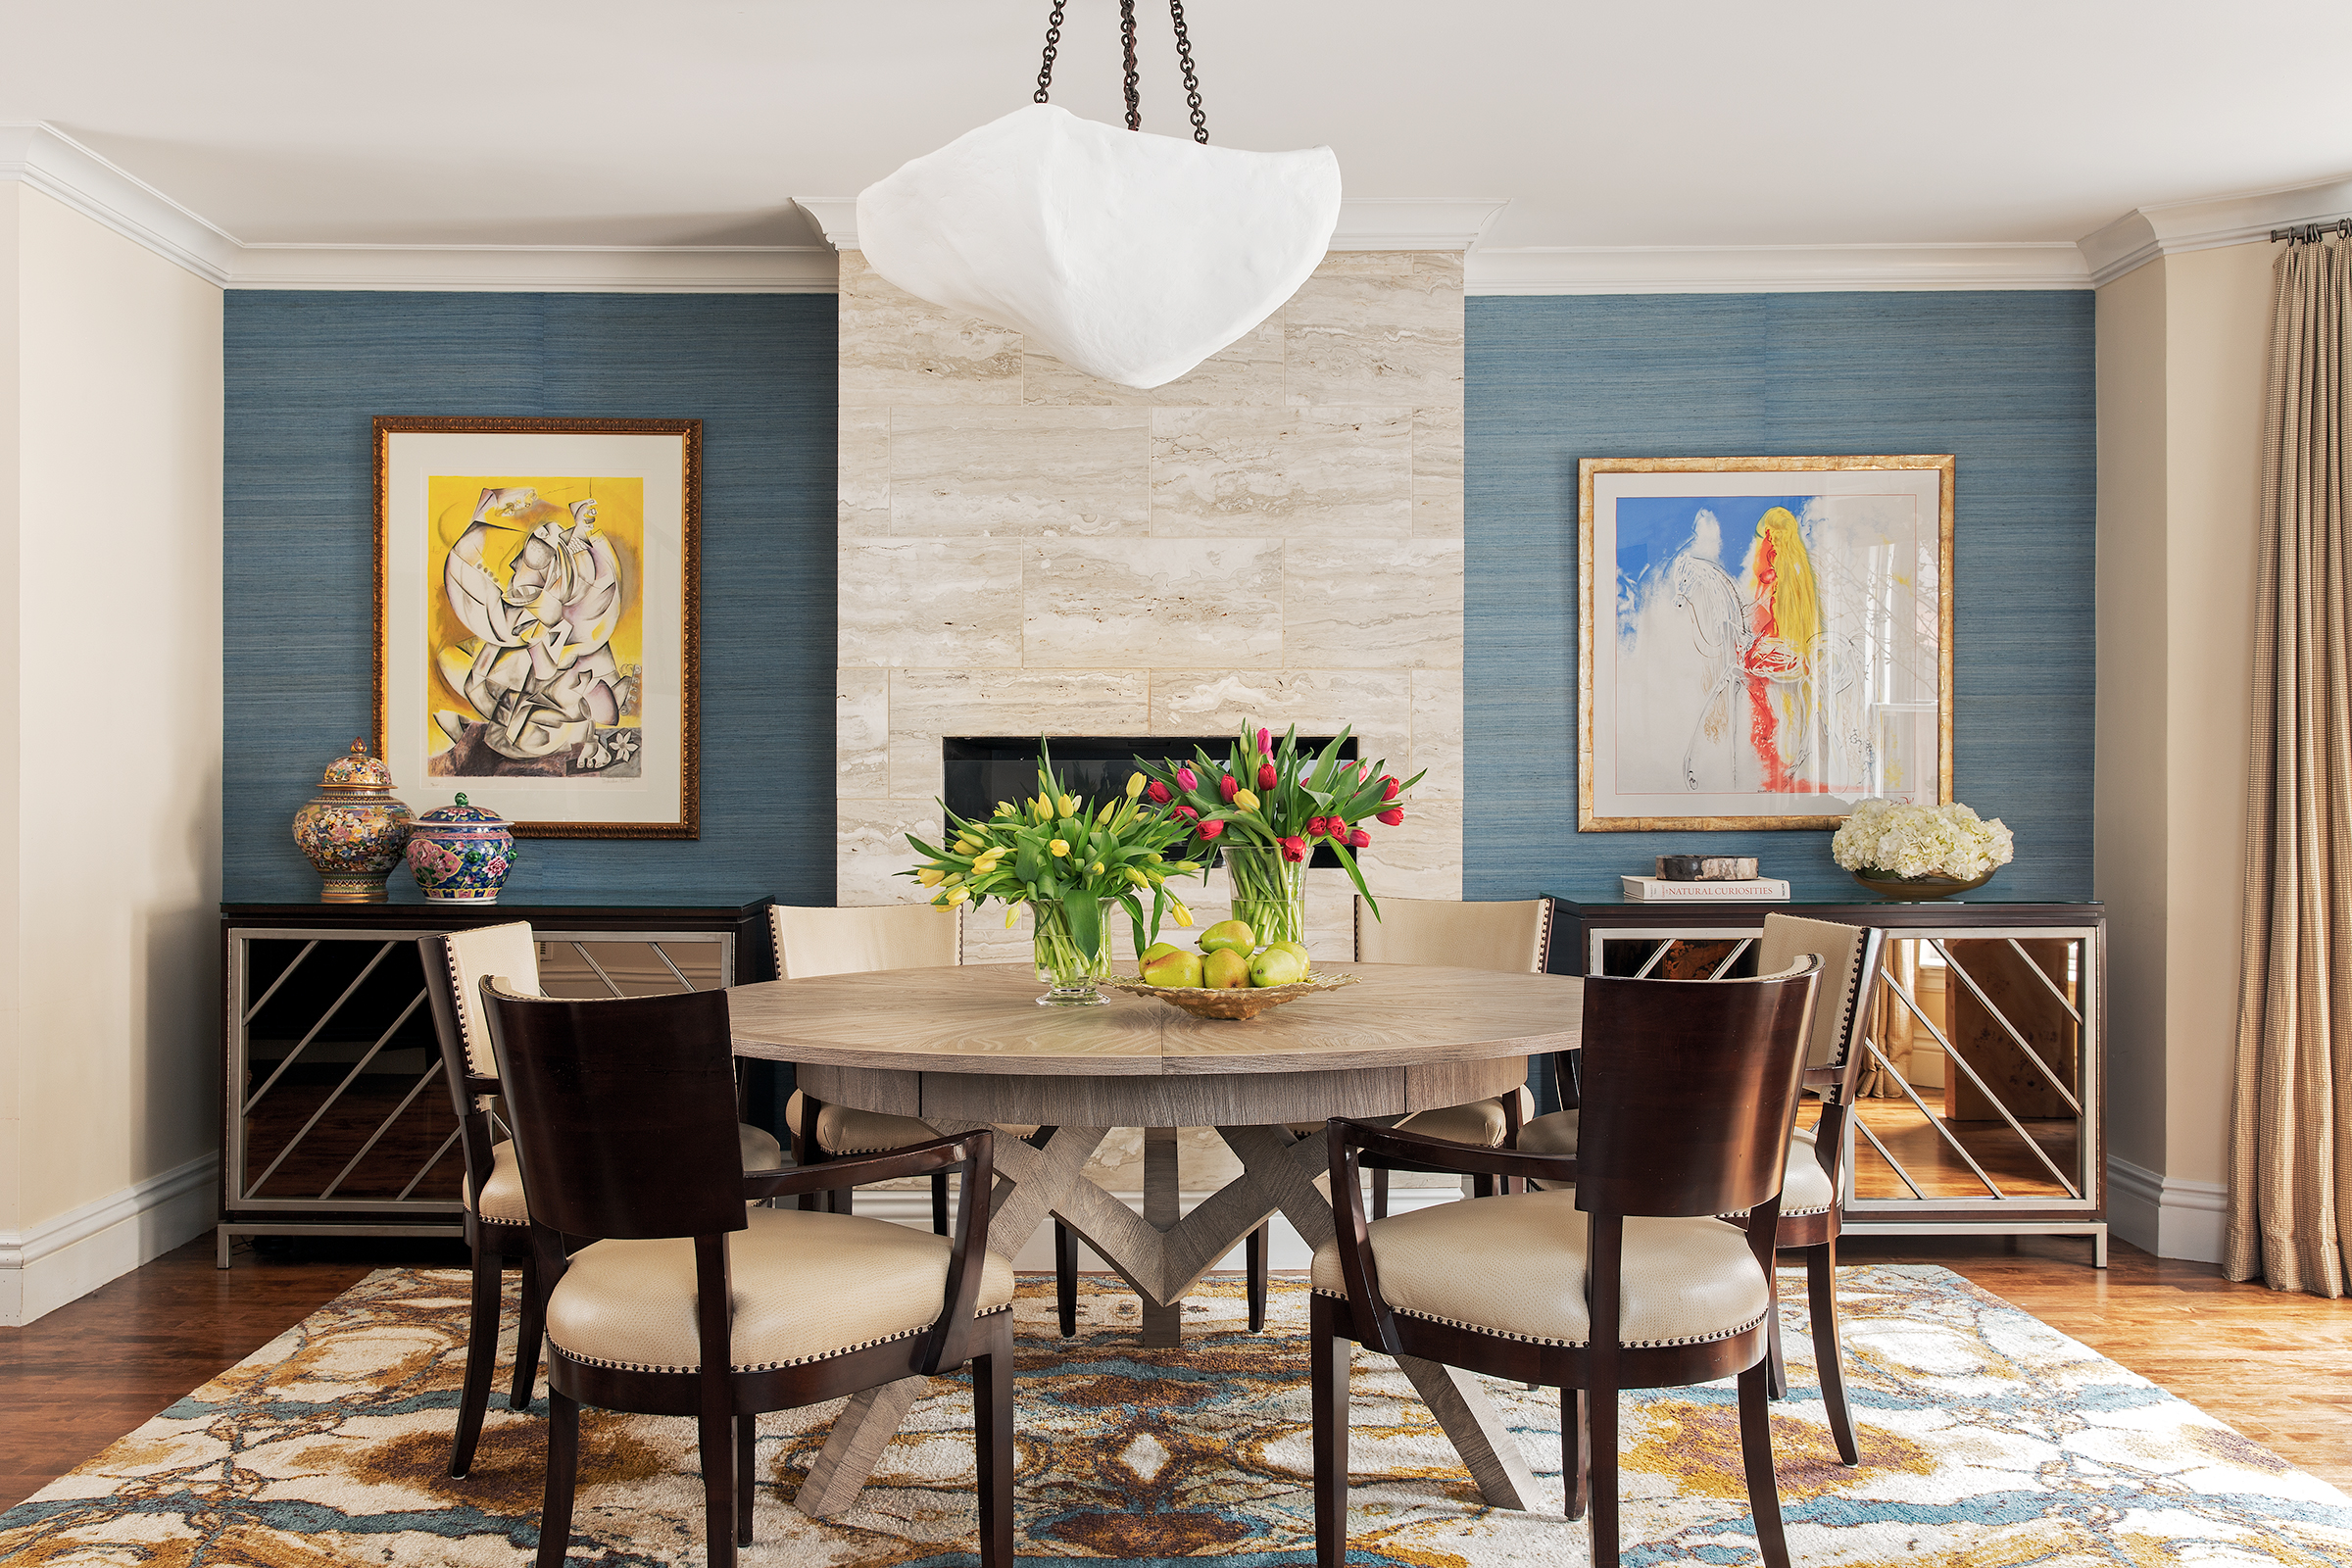 5-Transitional-Contemporary-Top-fireplace-dining-room-rug-ideas-Decorator-Best-Interior-Designers-Boston-South-End-Back-Bay-Cambridge-Dane-Austin-Design.jpg